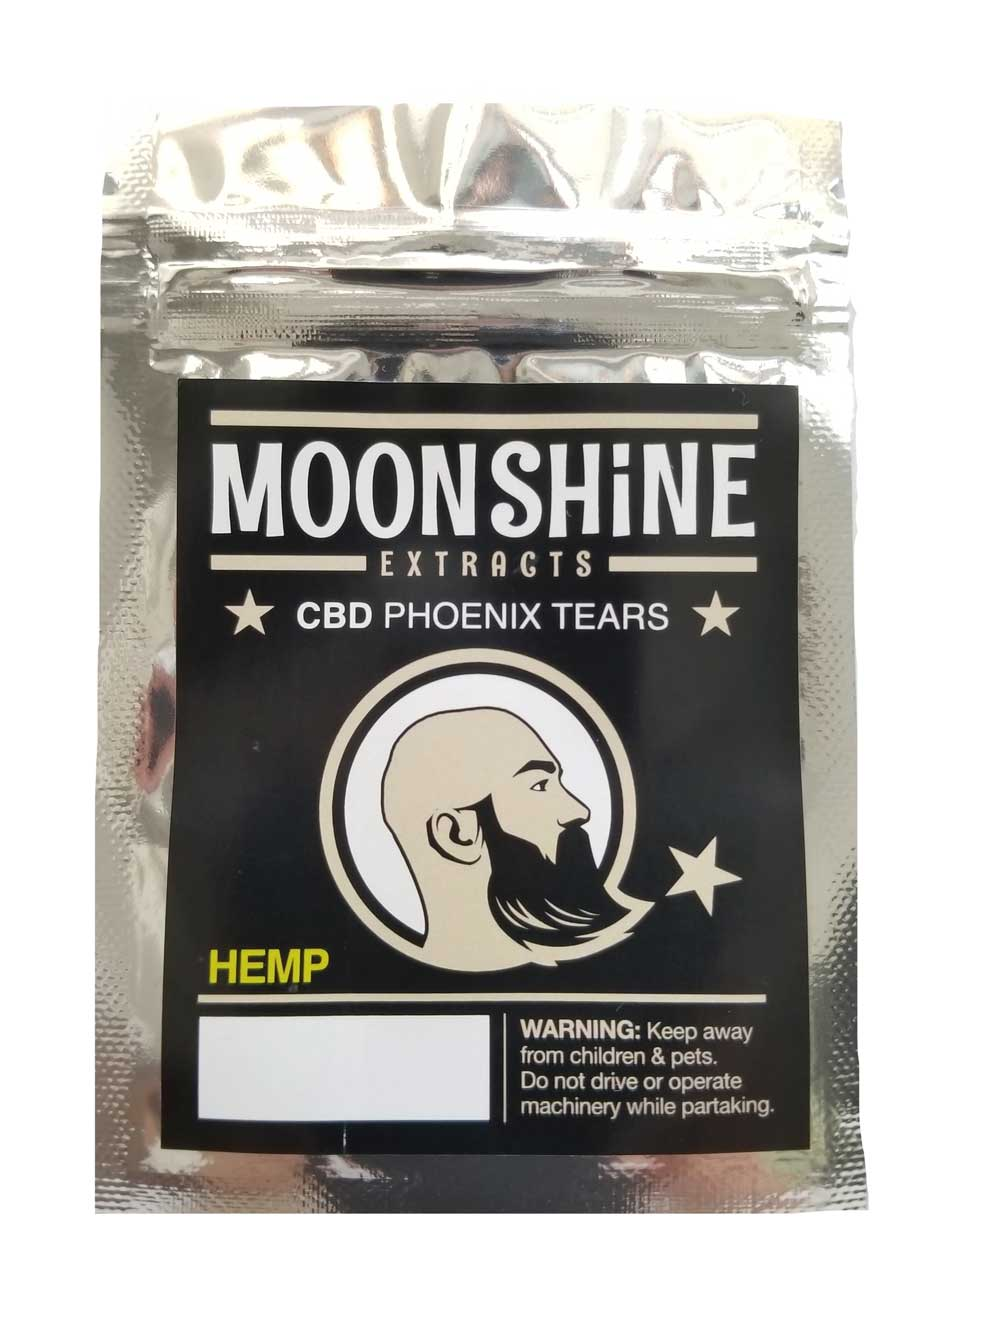 CBD Phoenix Tears | Hemp | Moonshine Extracts